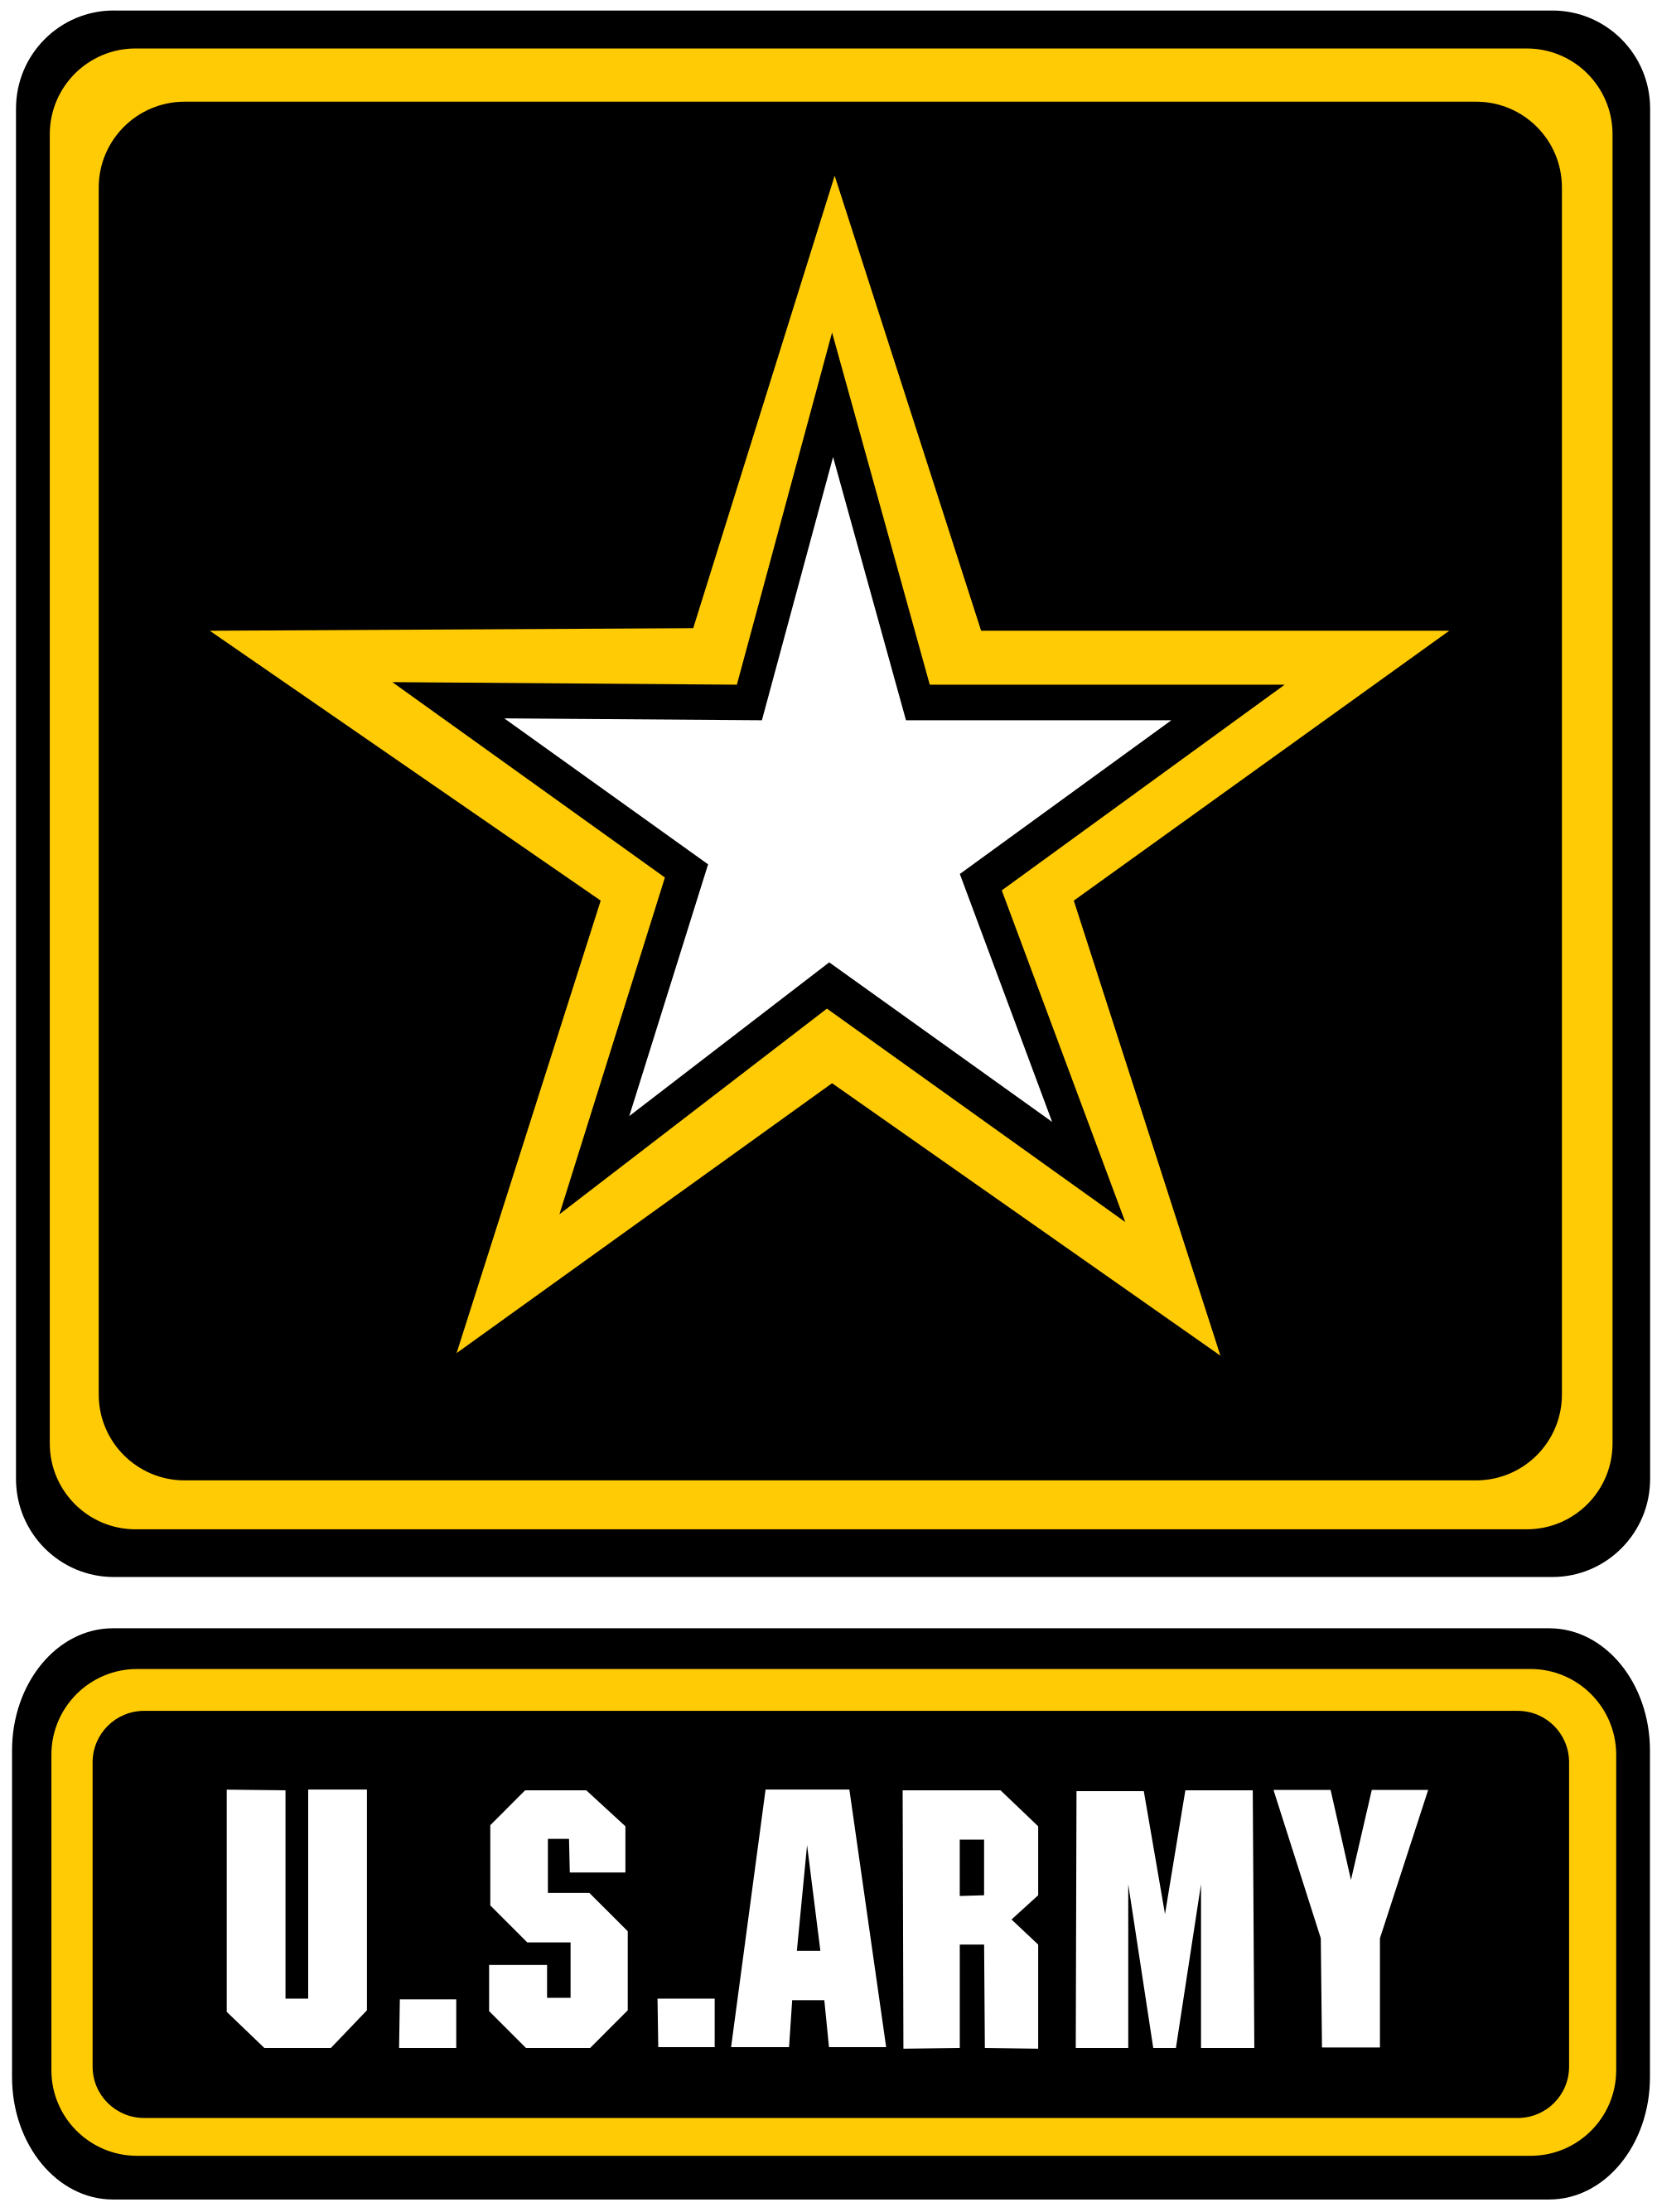 Us army emblem clipart vector library army logo Us army emblem clipart logo 4 free transparent logos png ... vector library